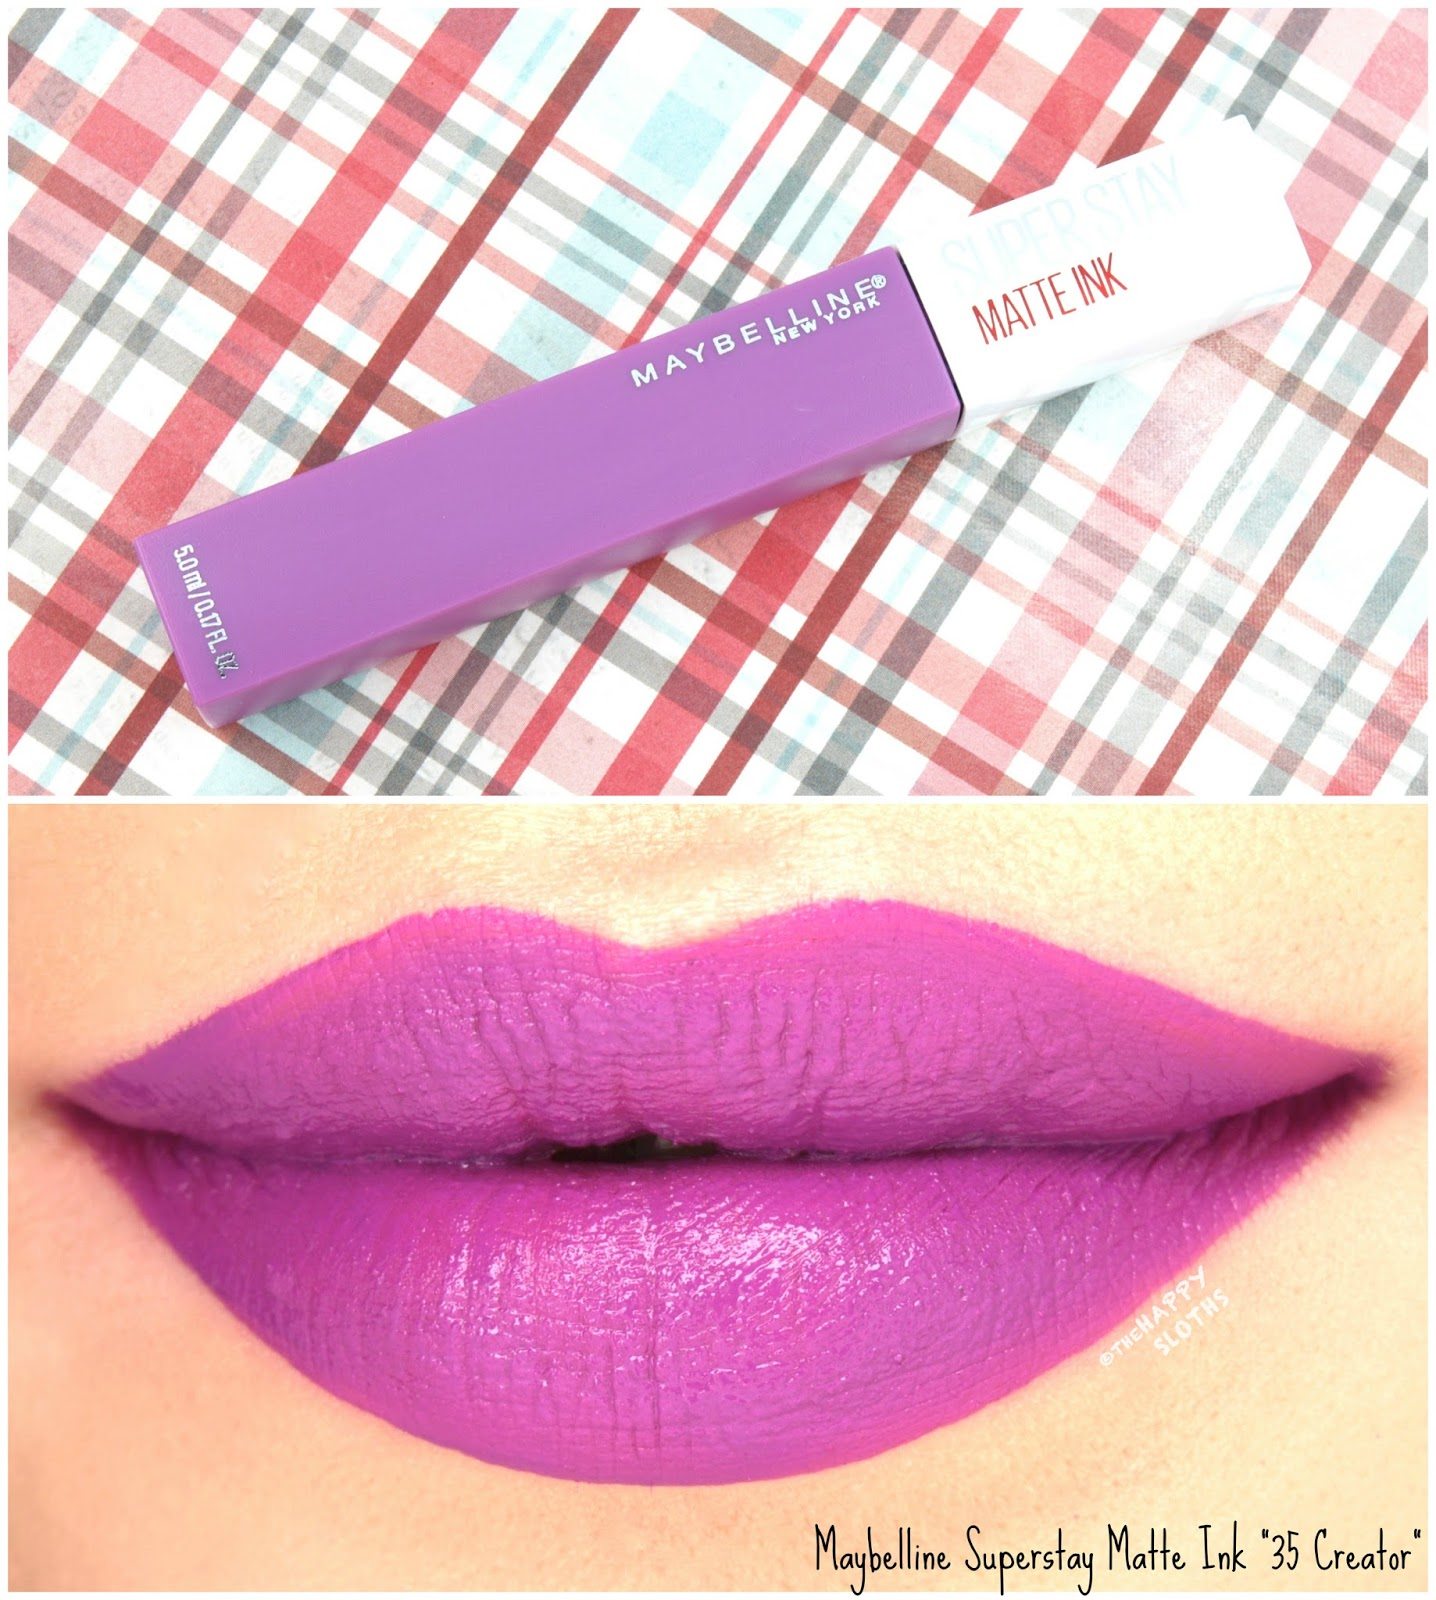 Maybelline Superstay Matte Ink Liquid Lipstick | 35 Creator: Review and Swatches